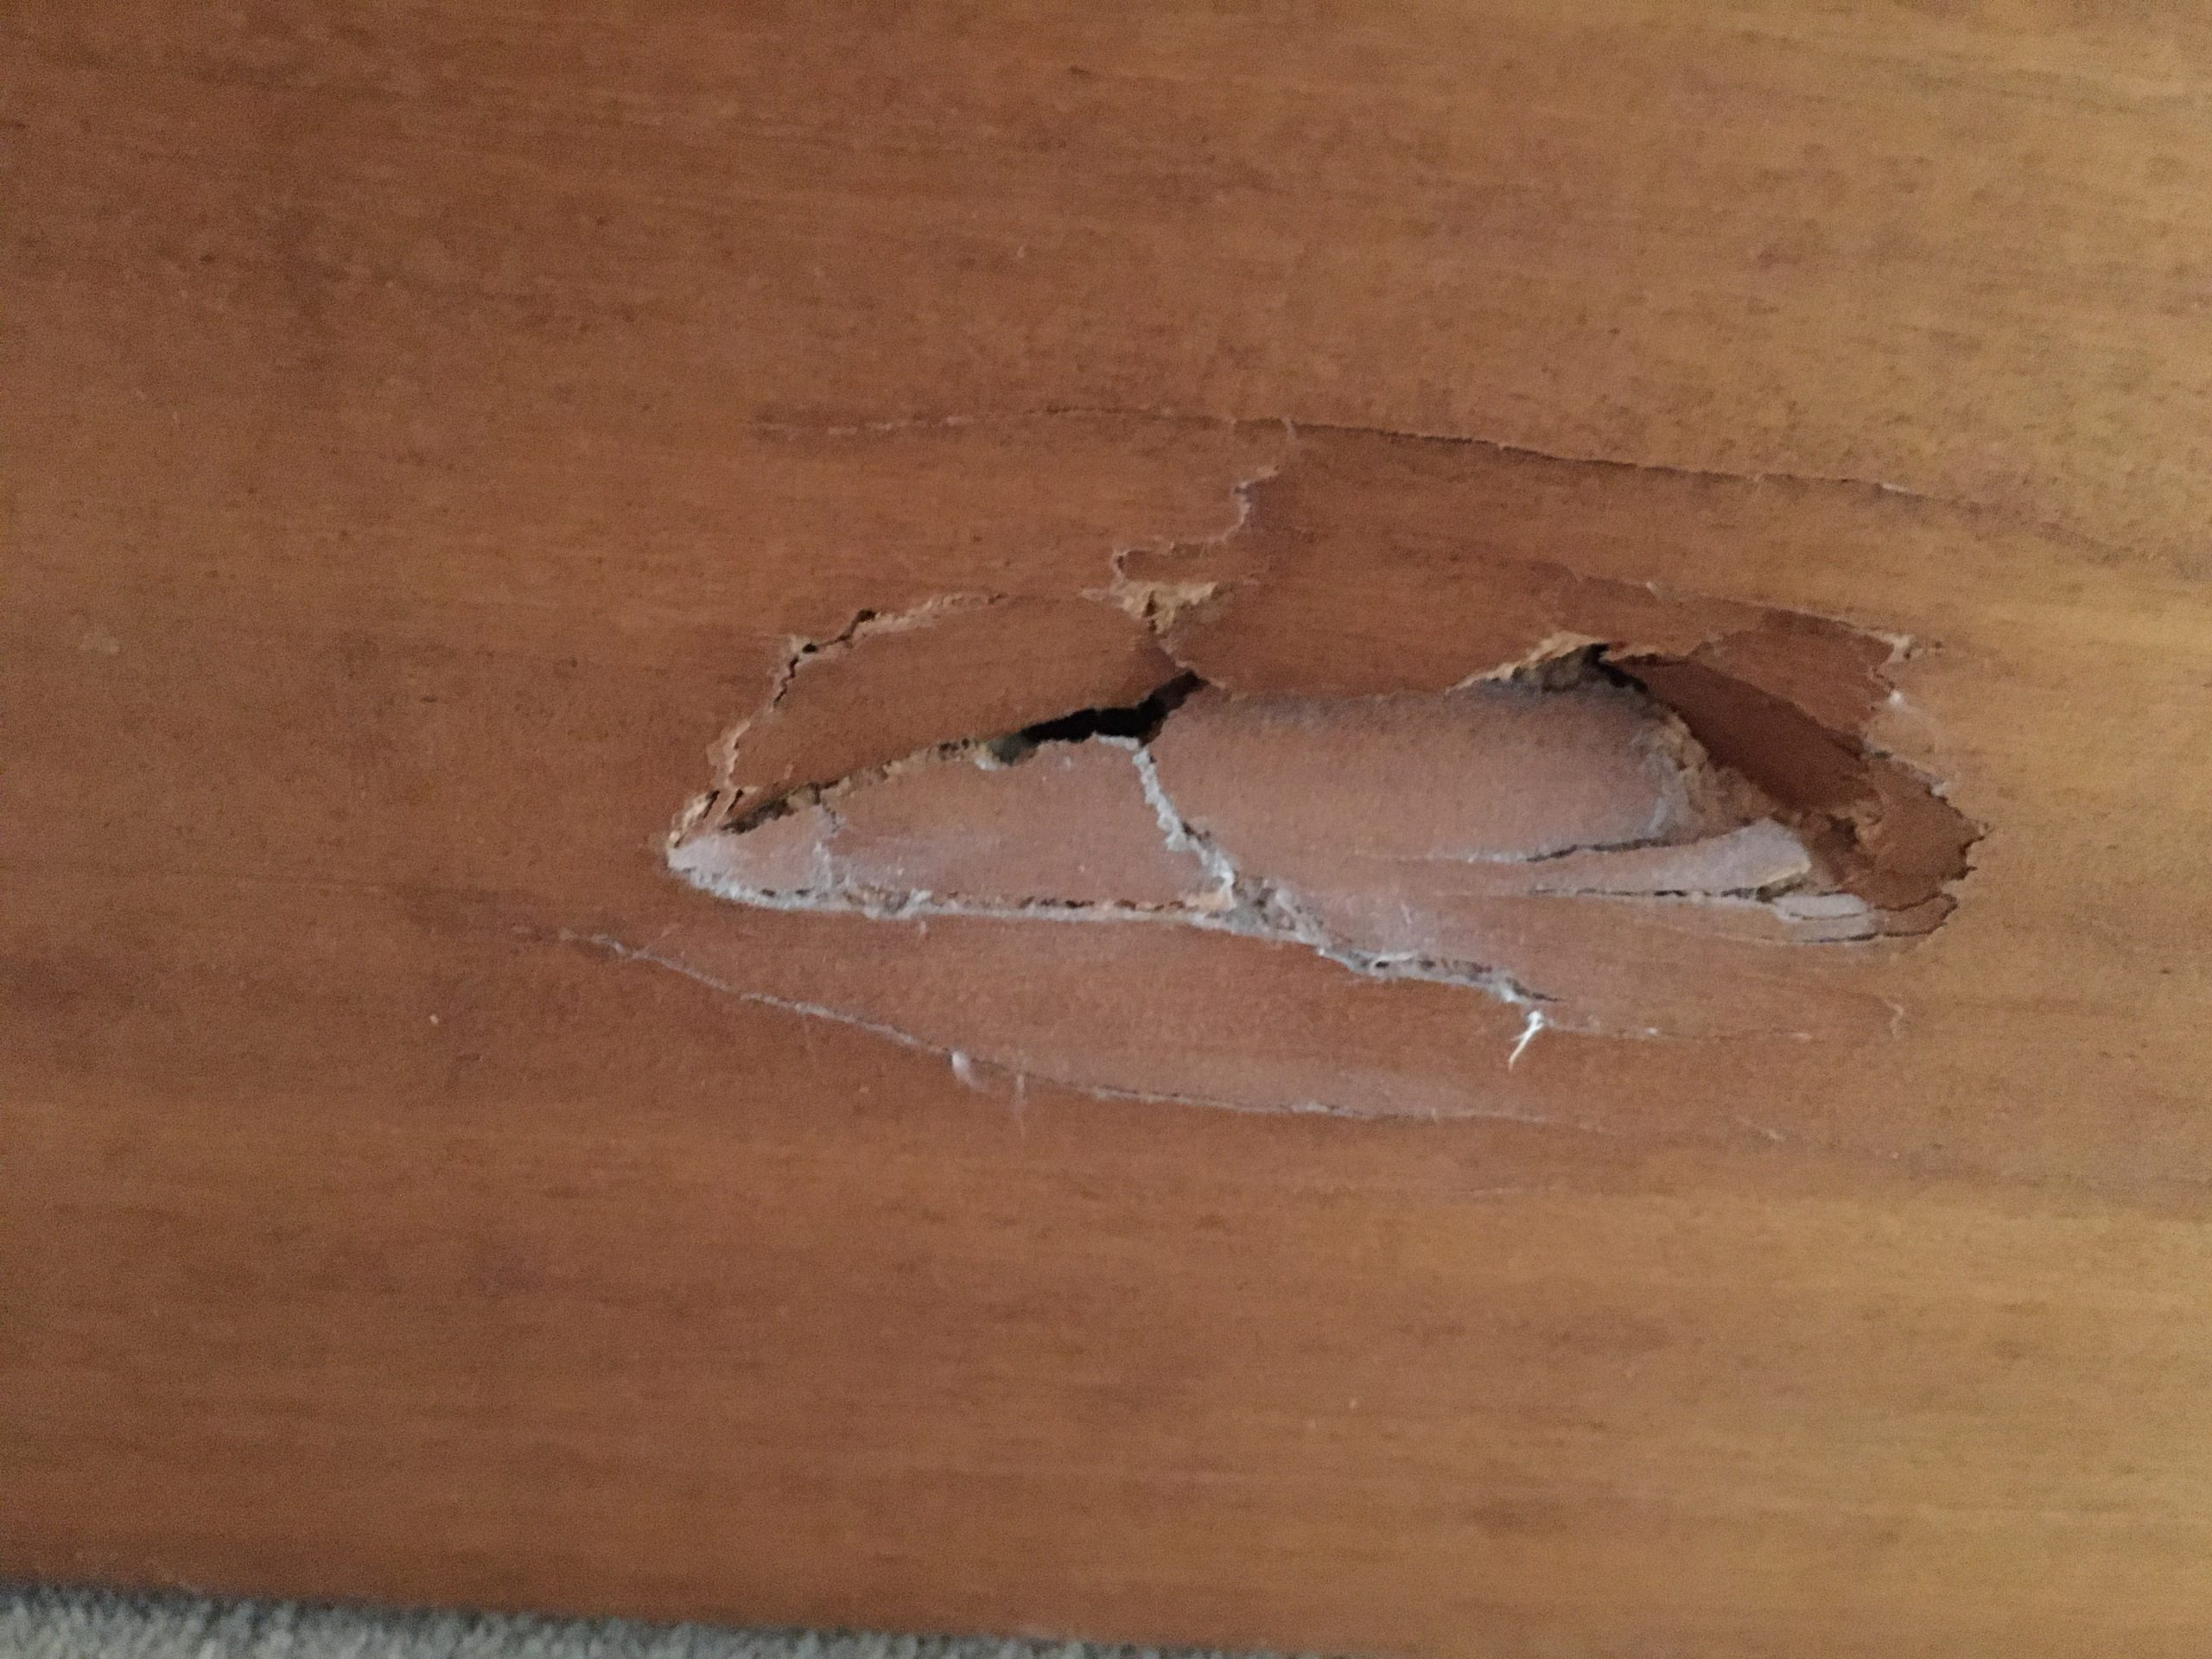 Image shows a close up photograph of a hole made by Touretteshero's foot on the wooden footboard of her bed.